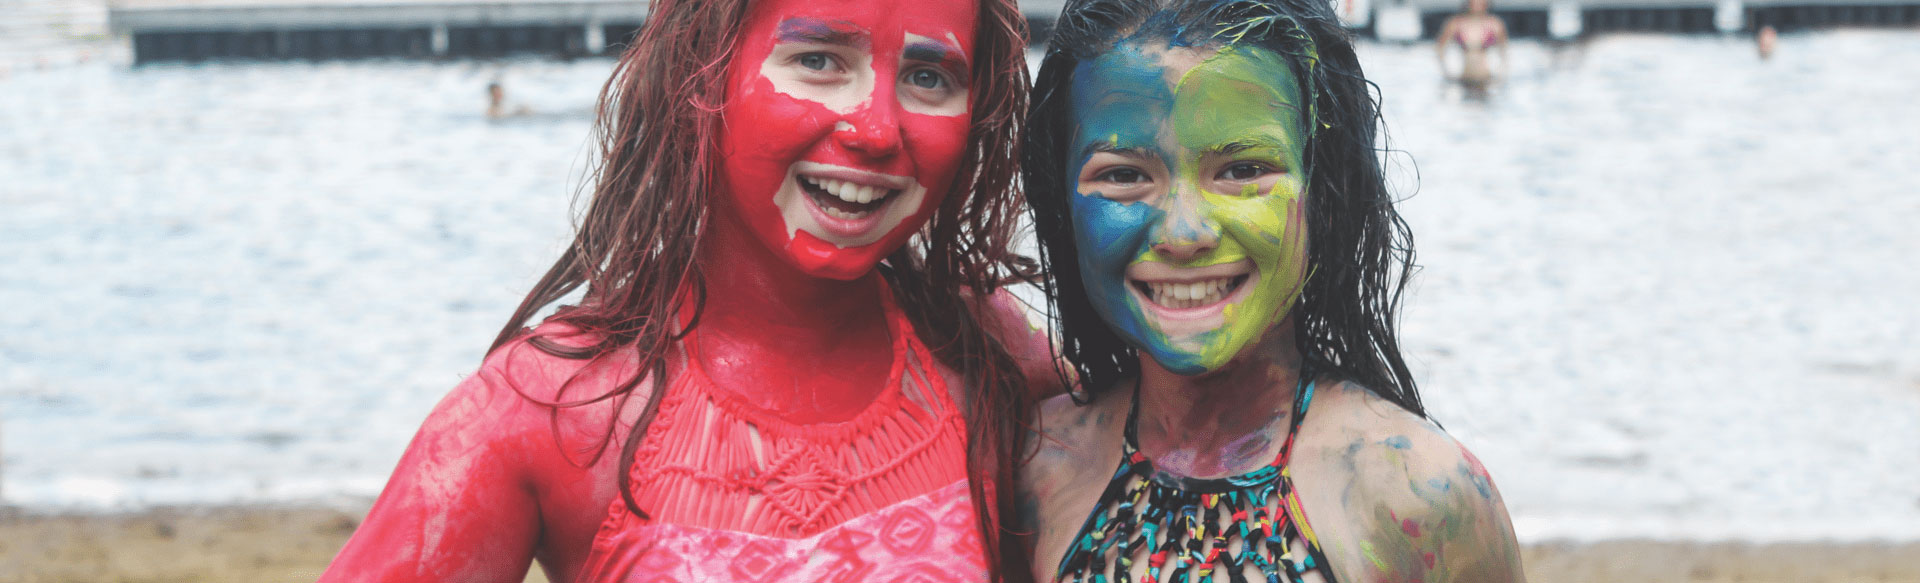 Two girls smiling with paint over their face